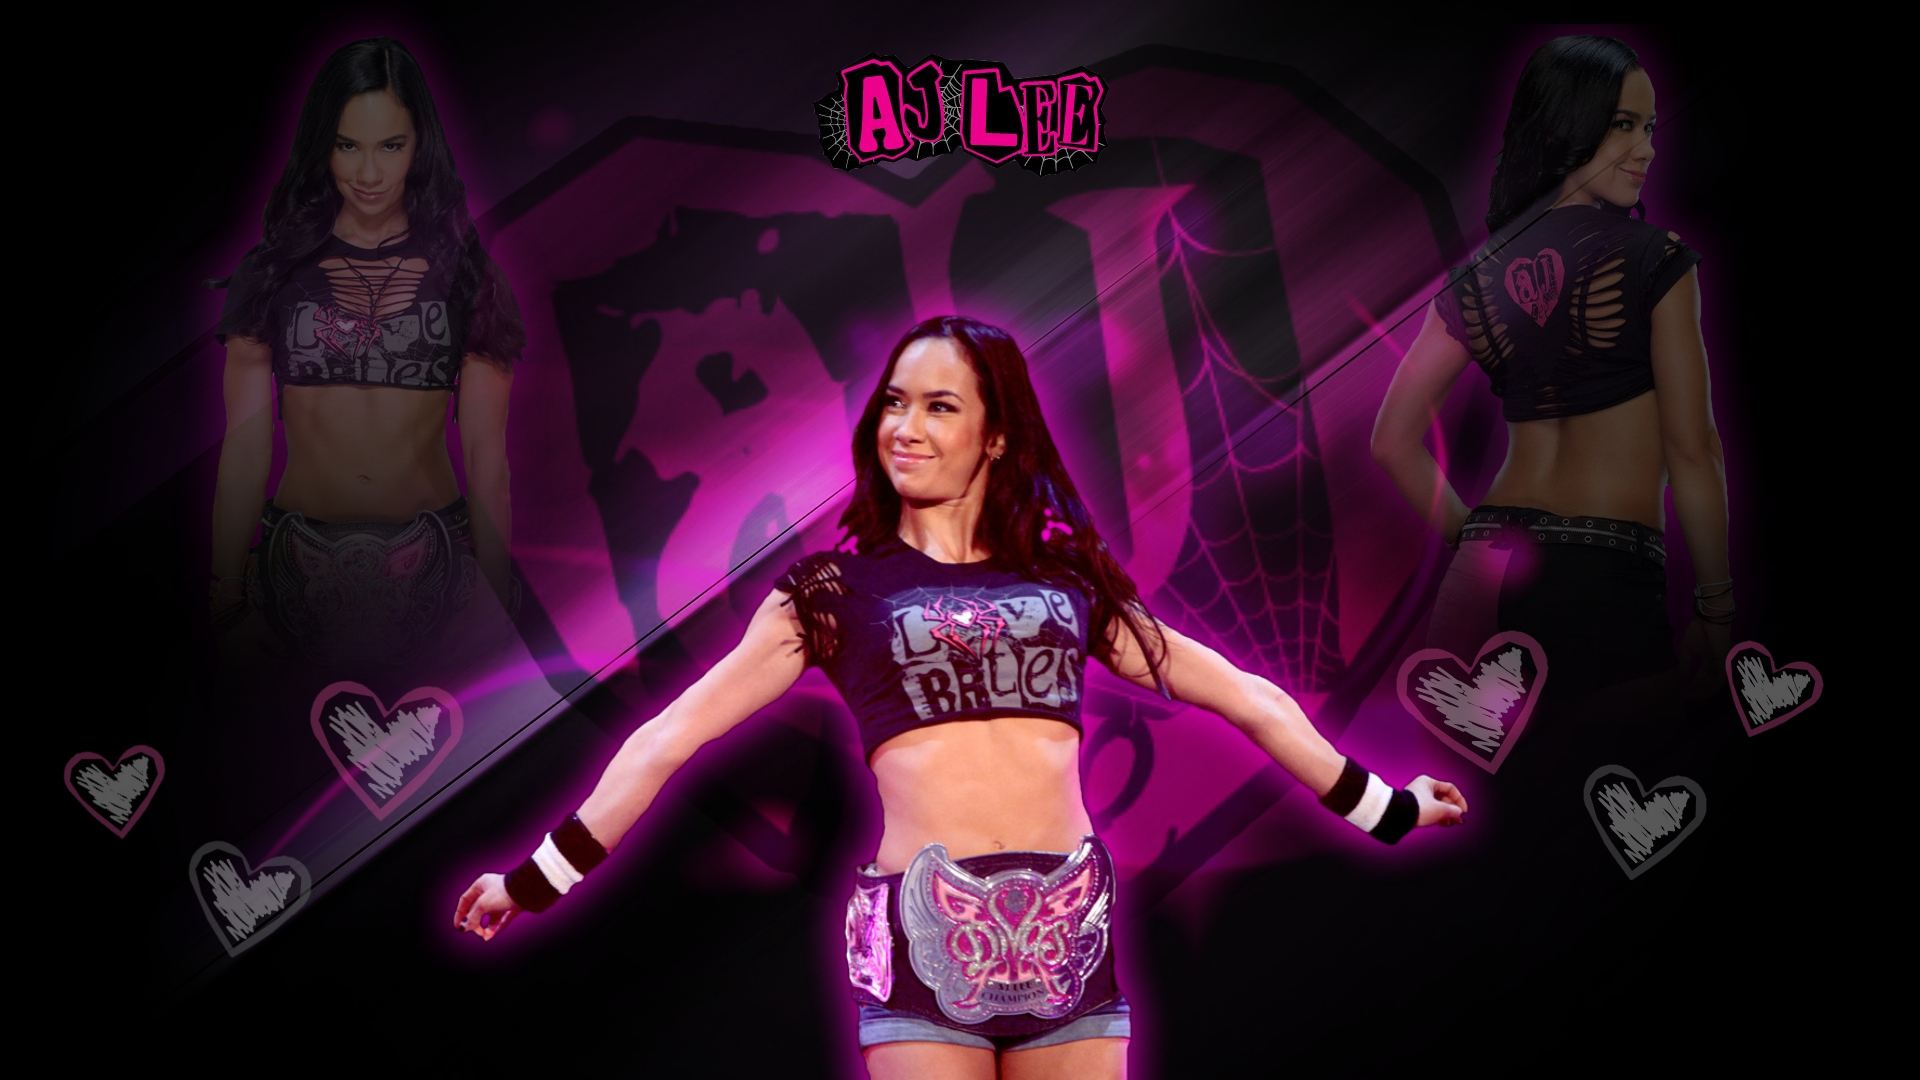 AJ Lee Wallpaper by RKv15